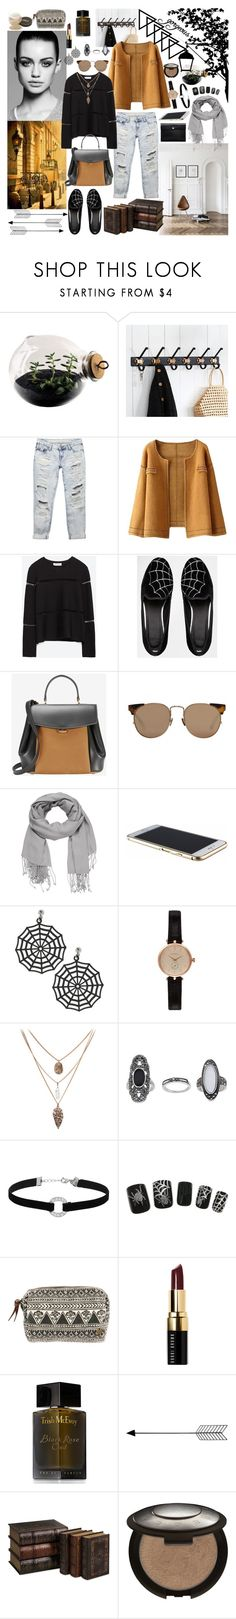 Gorgeous by mariettamyan on Polyvore featuring мода, Zara, Wet Seal, ASOS, Nina Ricci, Barbour, Topshop, Miss Selfridge, maurices and Linda Farrow